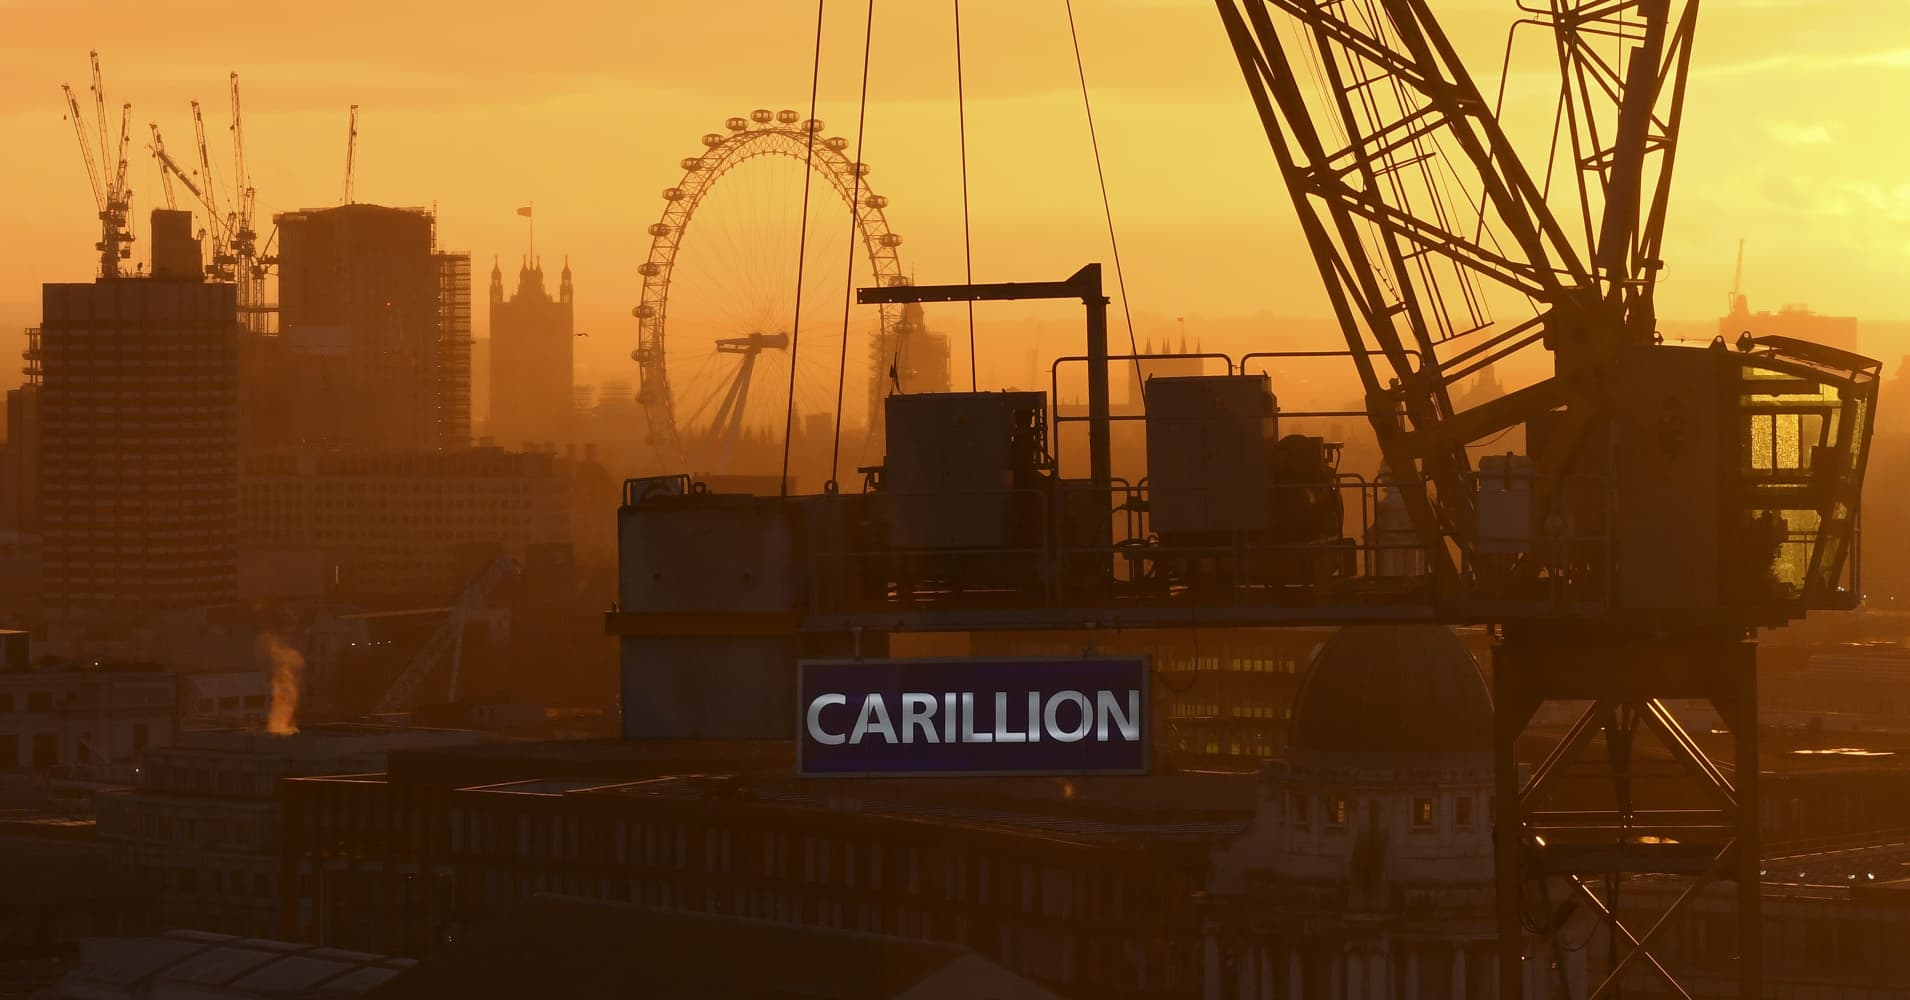 The sun sets behind a construction crane showing the branding of British construction company Carillion photographed on a building site in central London on January 15, 2018, with the skyline of the British capital in the background including the London Eye and the Houses of Parliament.